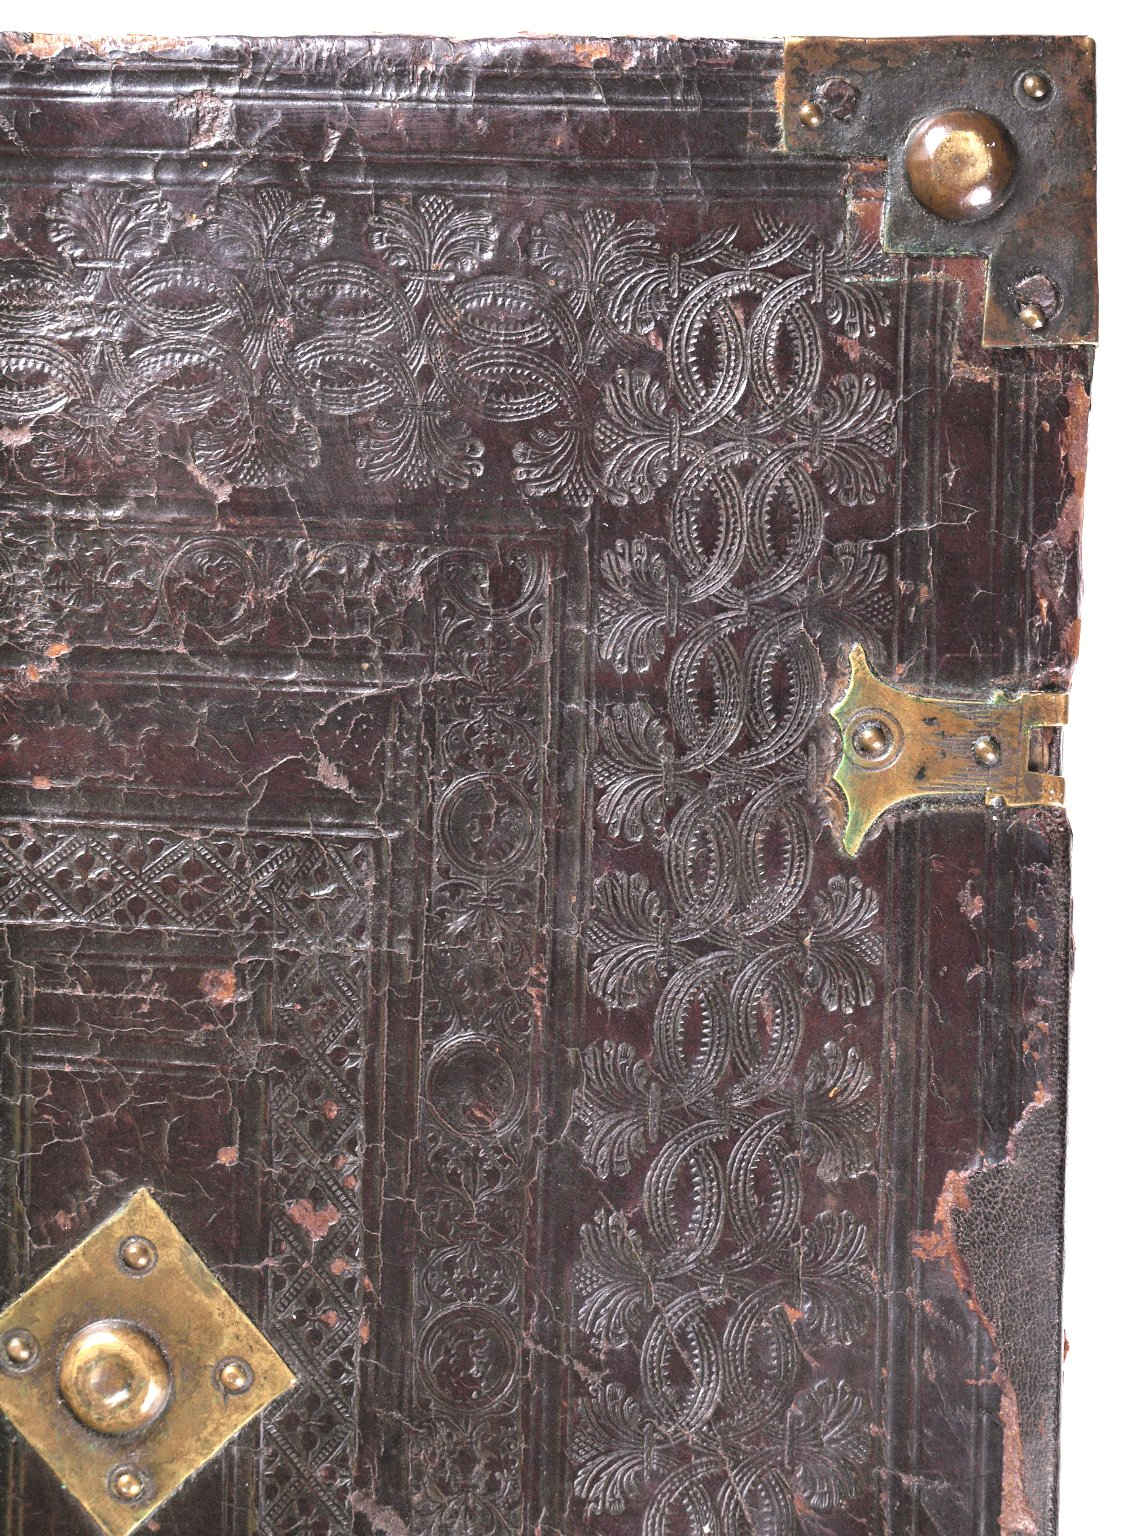 Back cover detail, STC 11223.2.